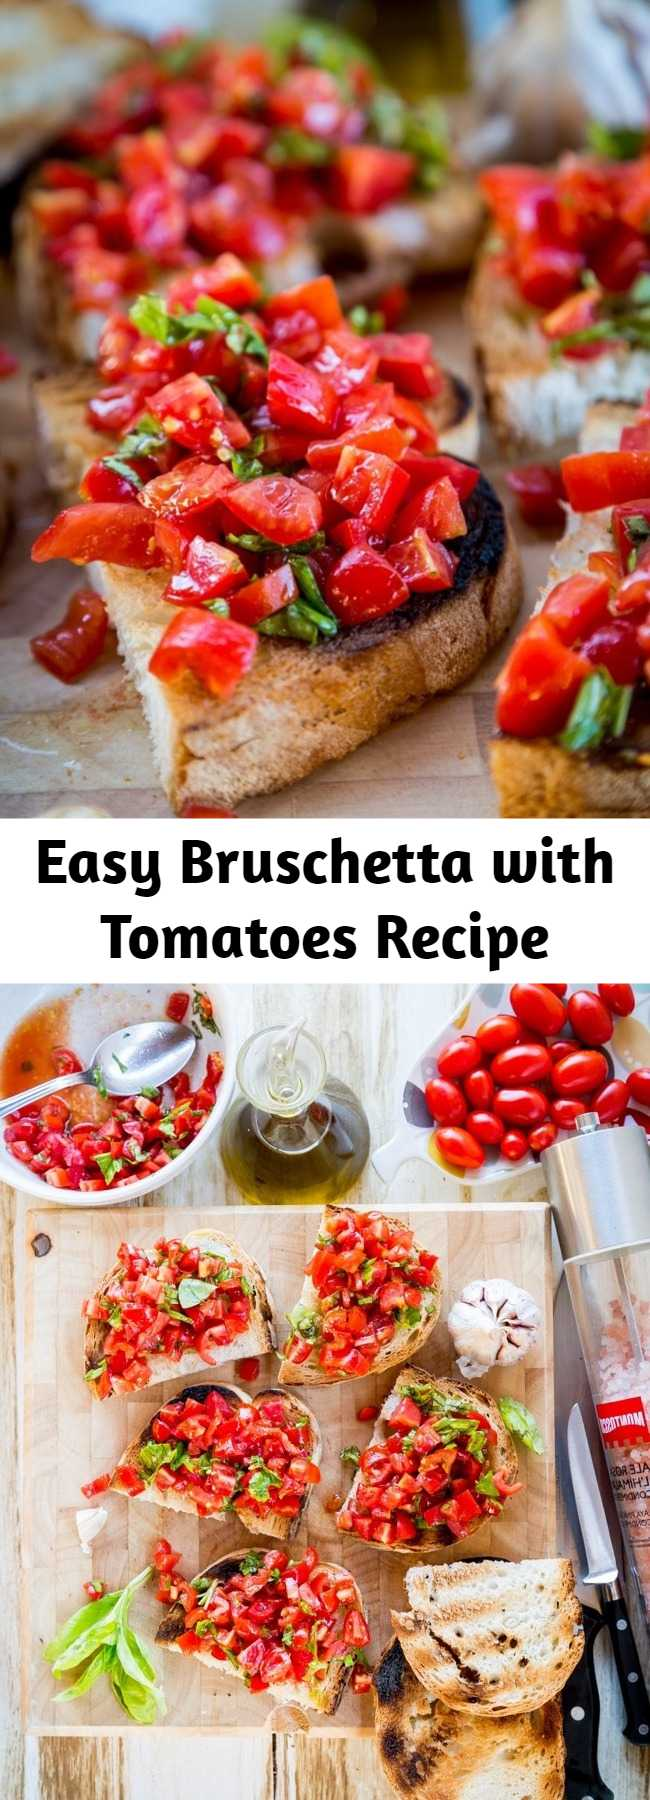 Easy Bruschetta with Tomatoes Recipe - Grilling in summer is best accompanied with the basic bruschetta al pomodoro. Having this to start the meal can be dangerously good that you tend to eat too much and end up not having much space anymore for the rest of the courses.